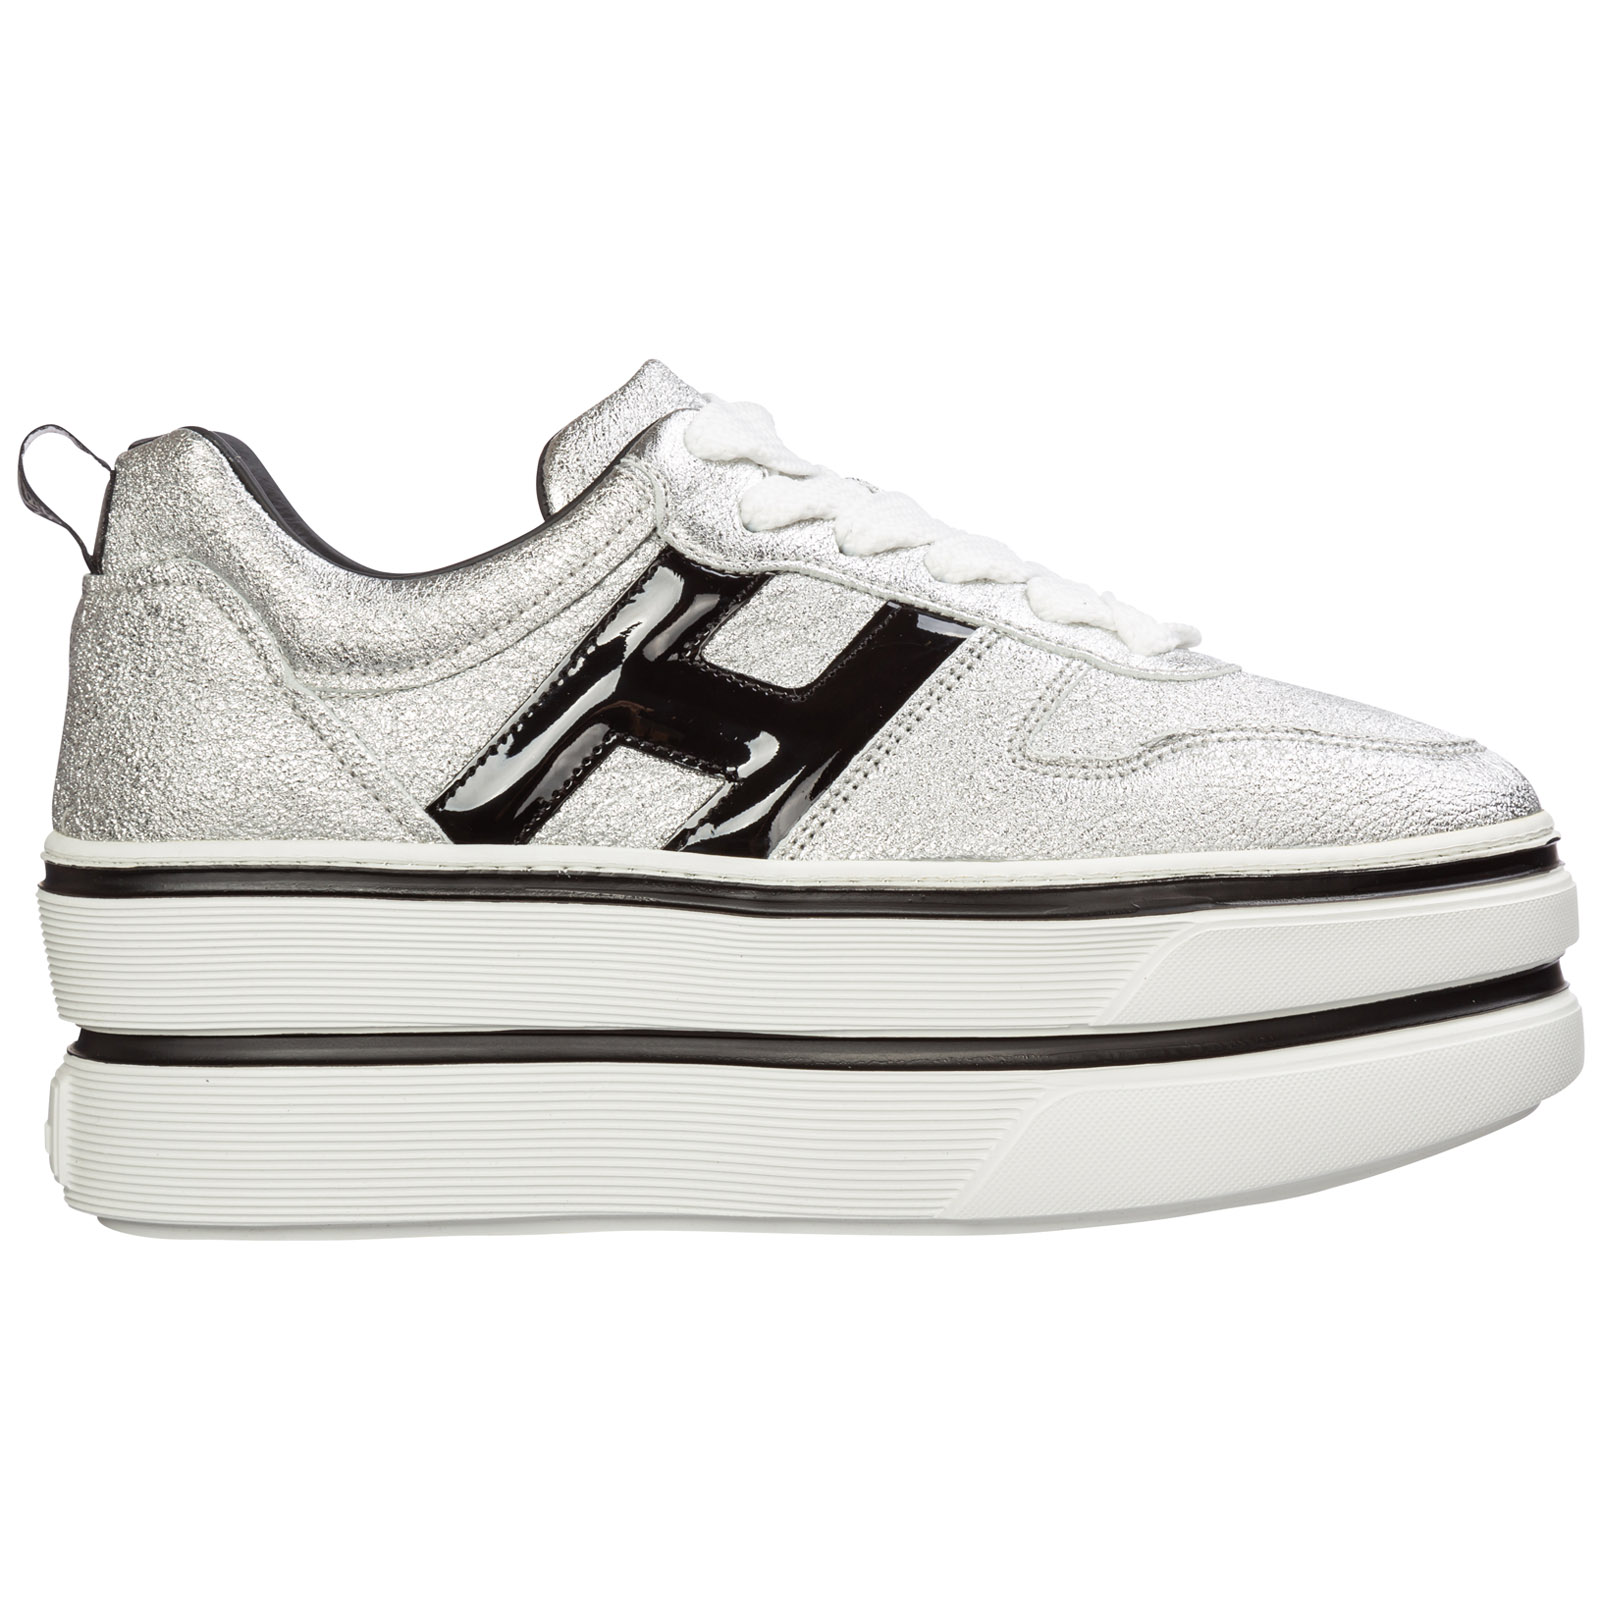 Women's shoes leather trainers sneakers h449